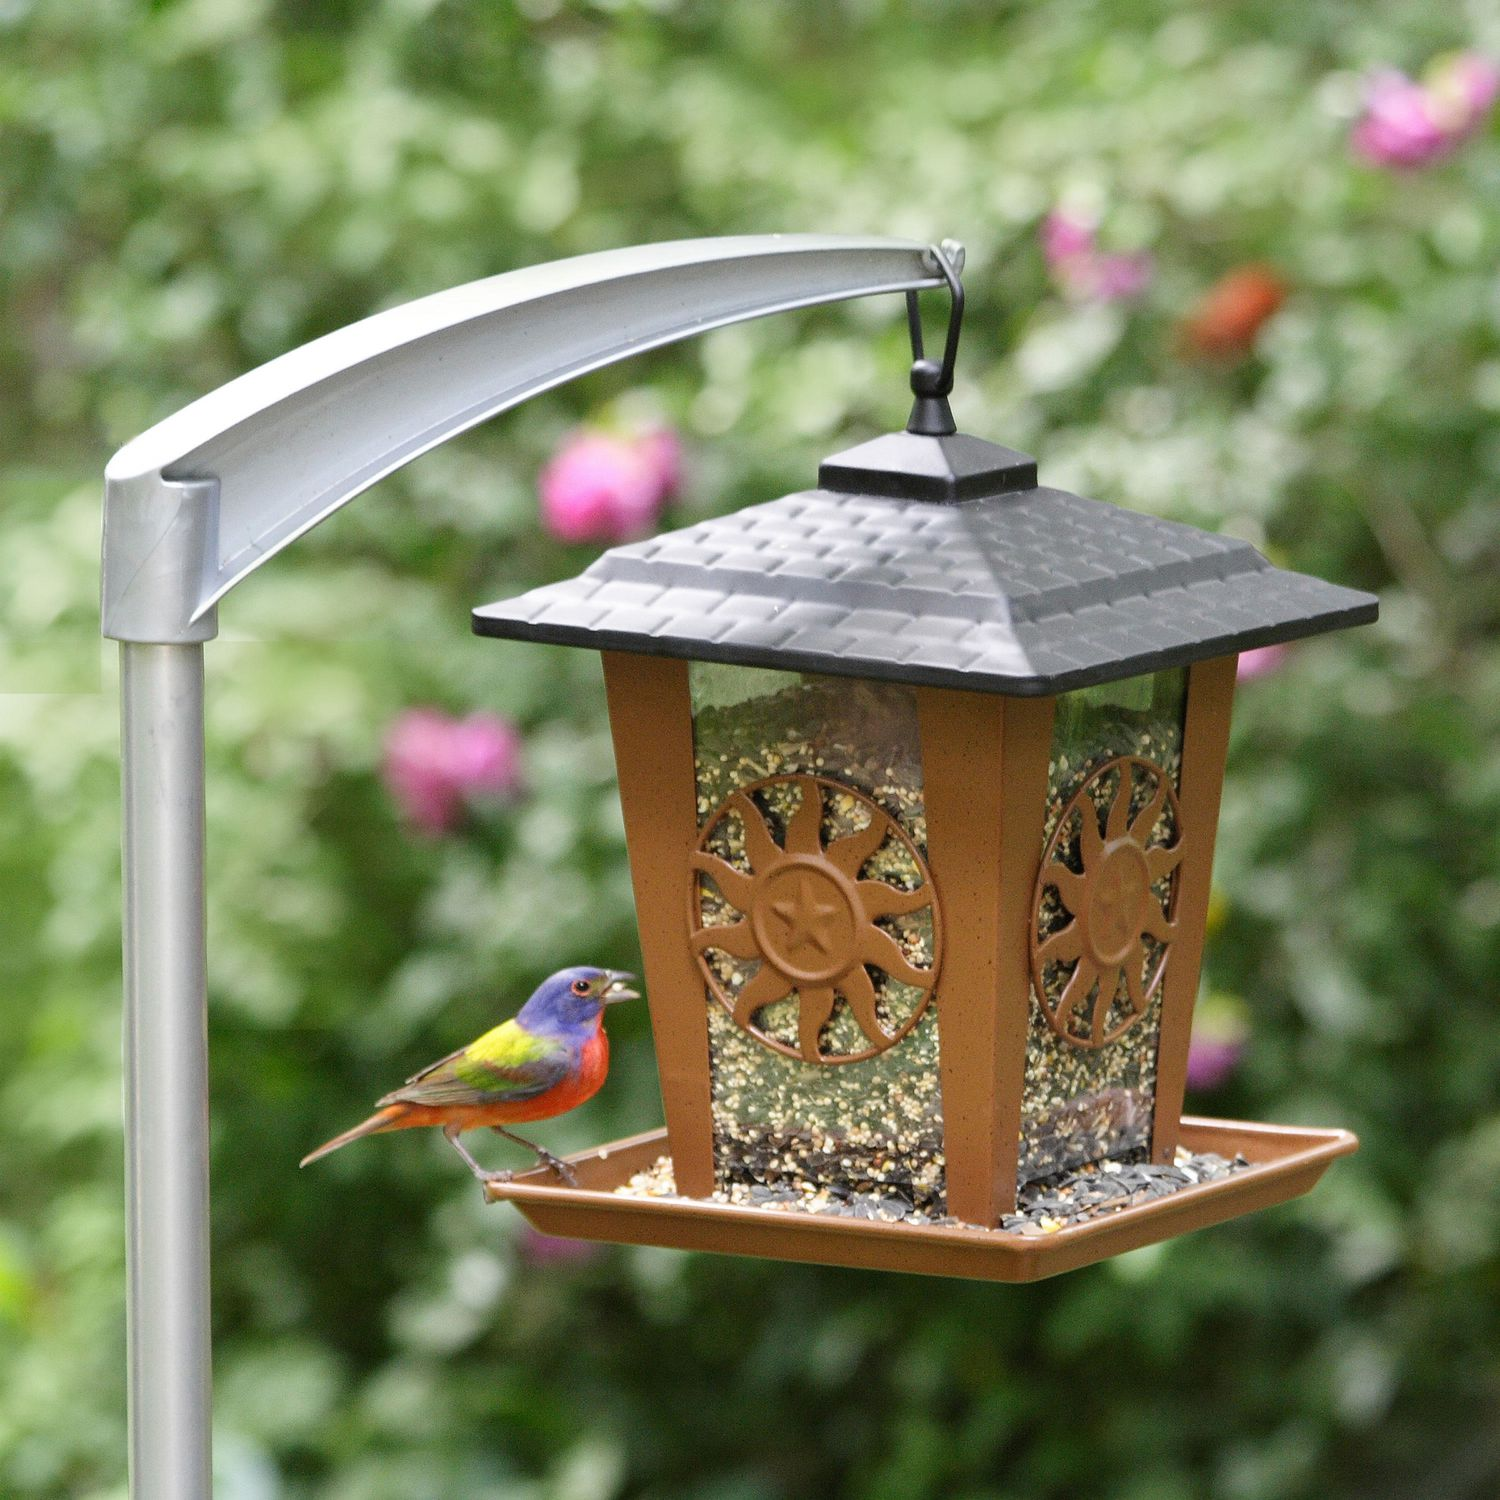 jagunda feeder drollyankees mounted jg droll squirrel gd pole proof bird yankees sq product